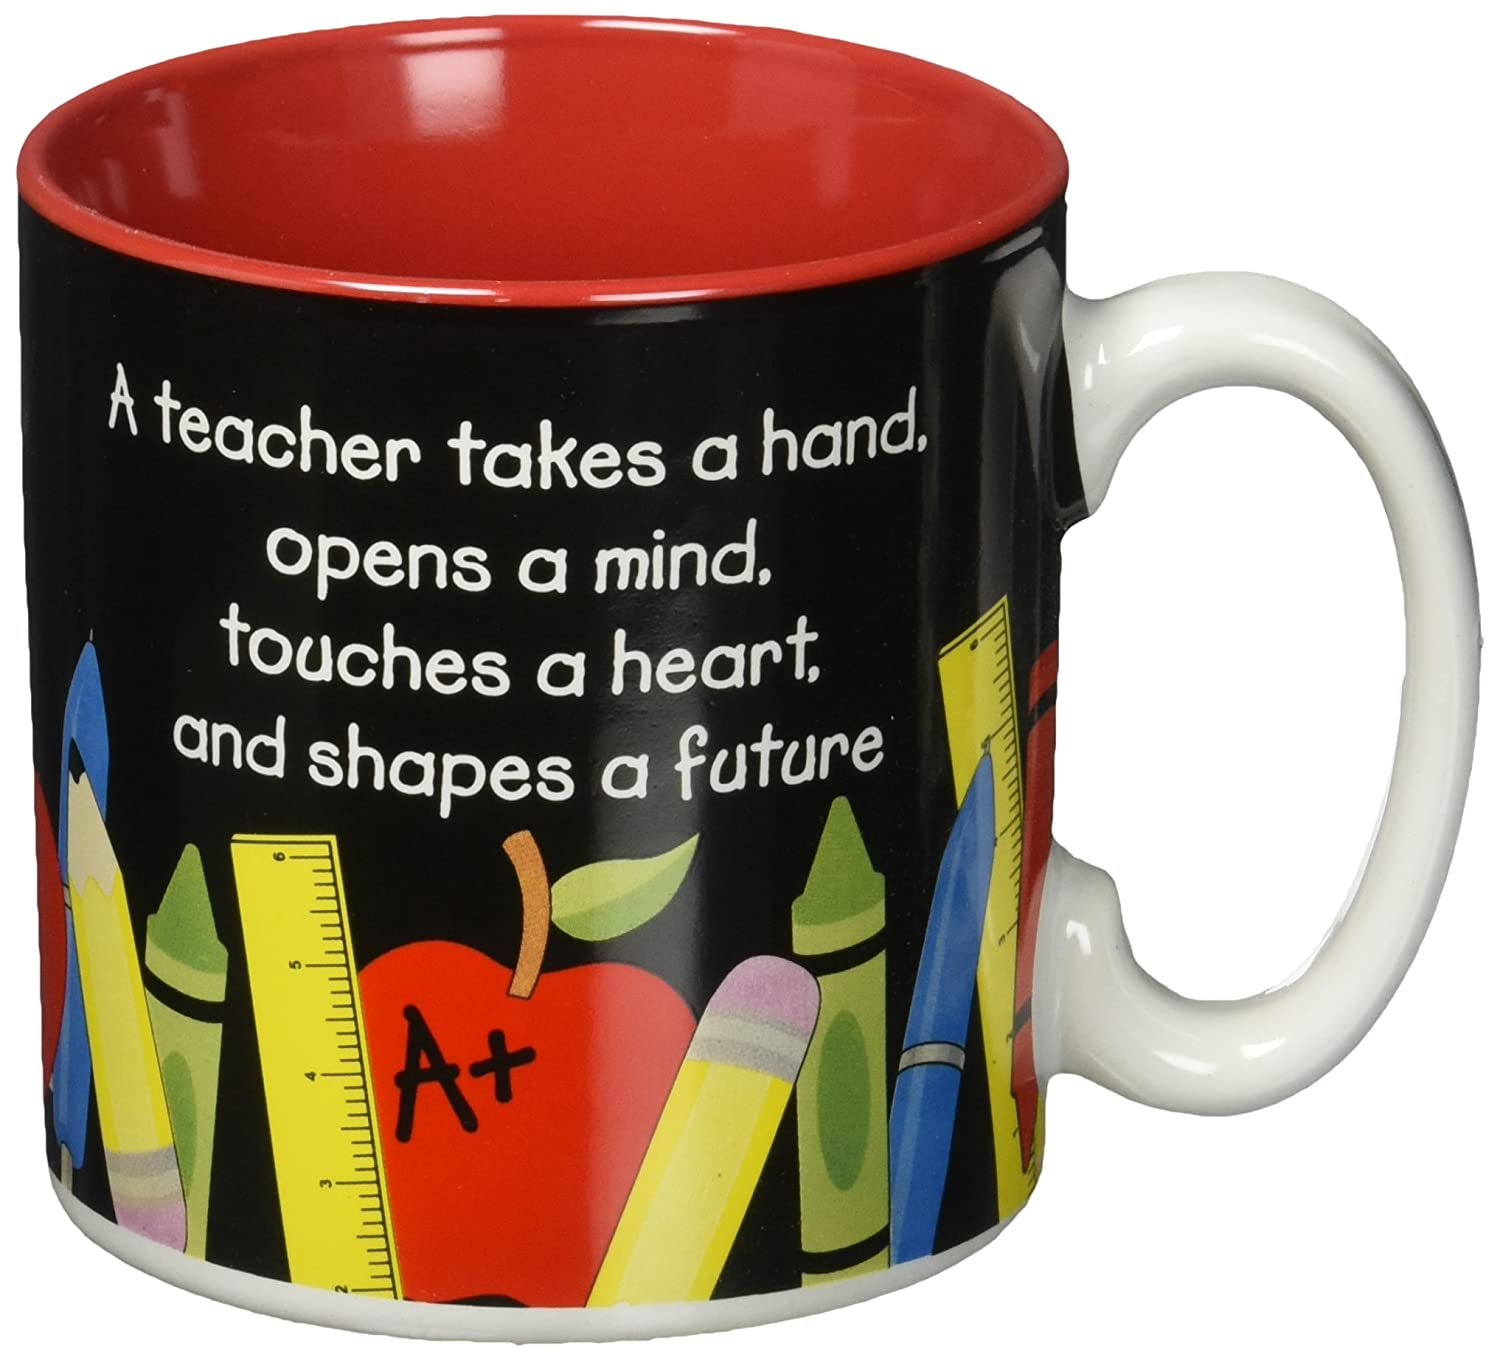 #1 Teacher 13 oz Coffee Mug with Pencil, Rulers, Crayons, and Pen Accents Inexpensive Teacher's Gift Burton & Burton SS-BNB-142100